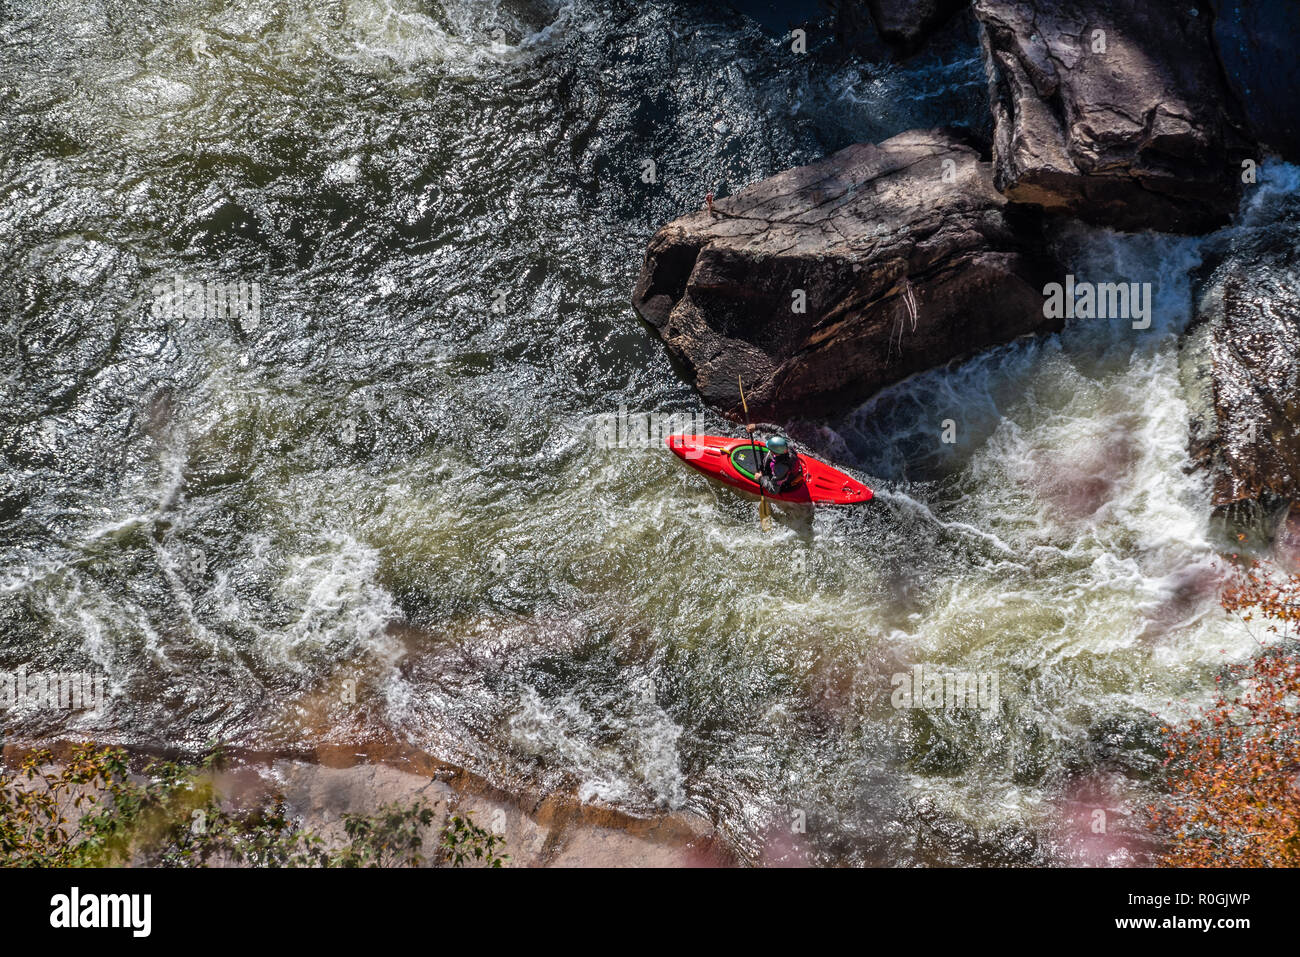 Whitewater kayaker navigating the Tallulah River in Tallulah Gorge during the annual whitewater release from Tallulah Falls Dam in North Georgia. - Stock Image